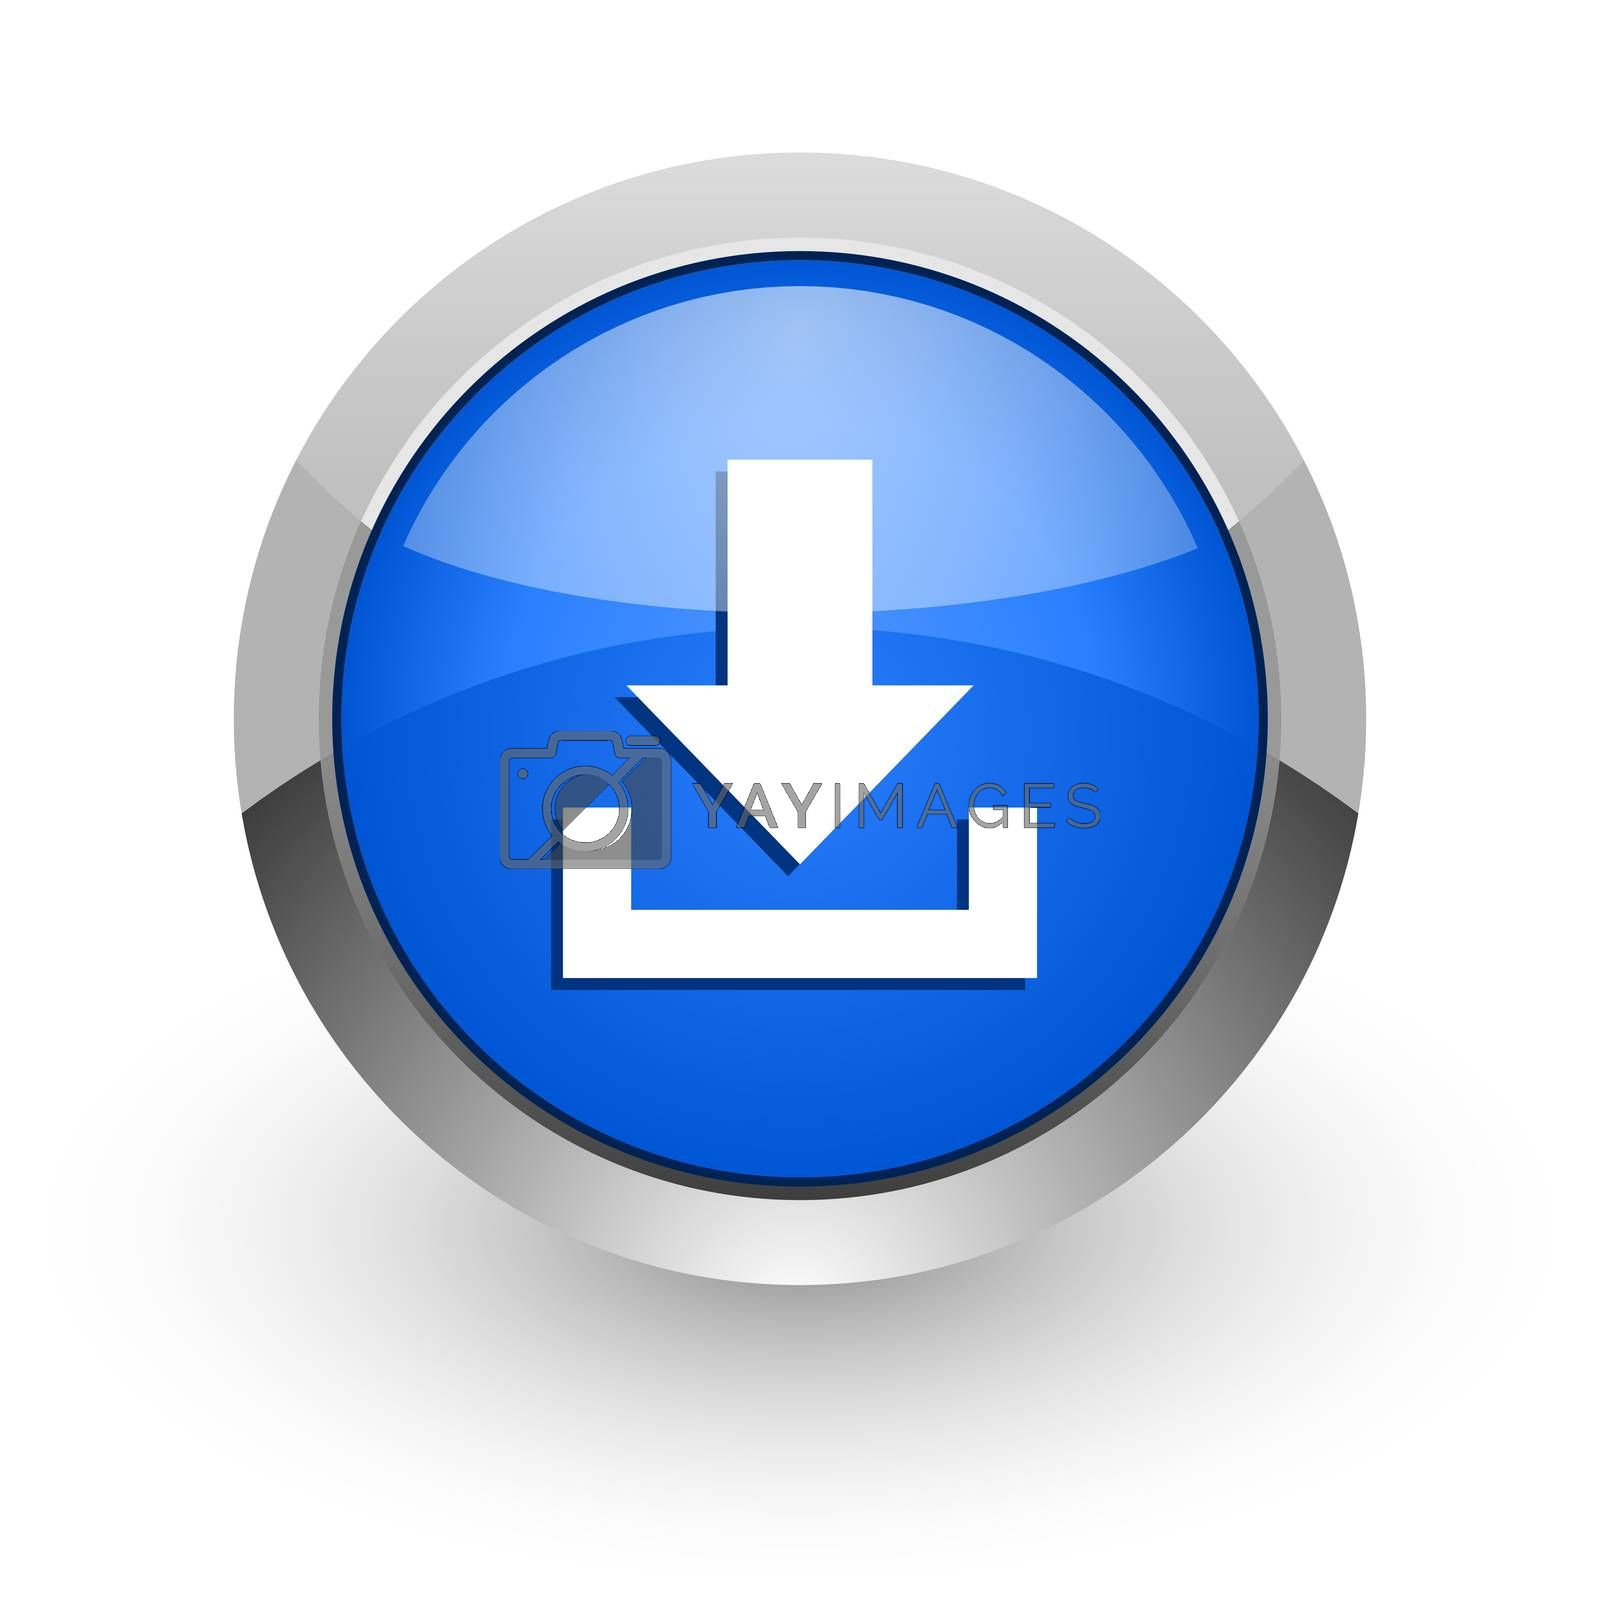 Royalty free image of download blue glossy web icon by alexwhite